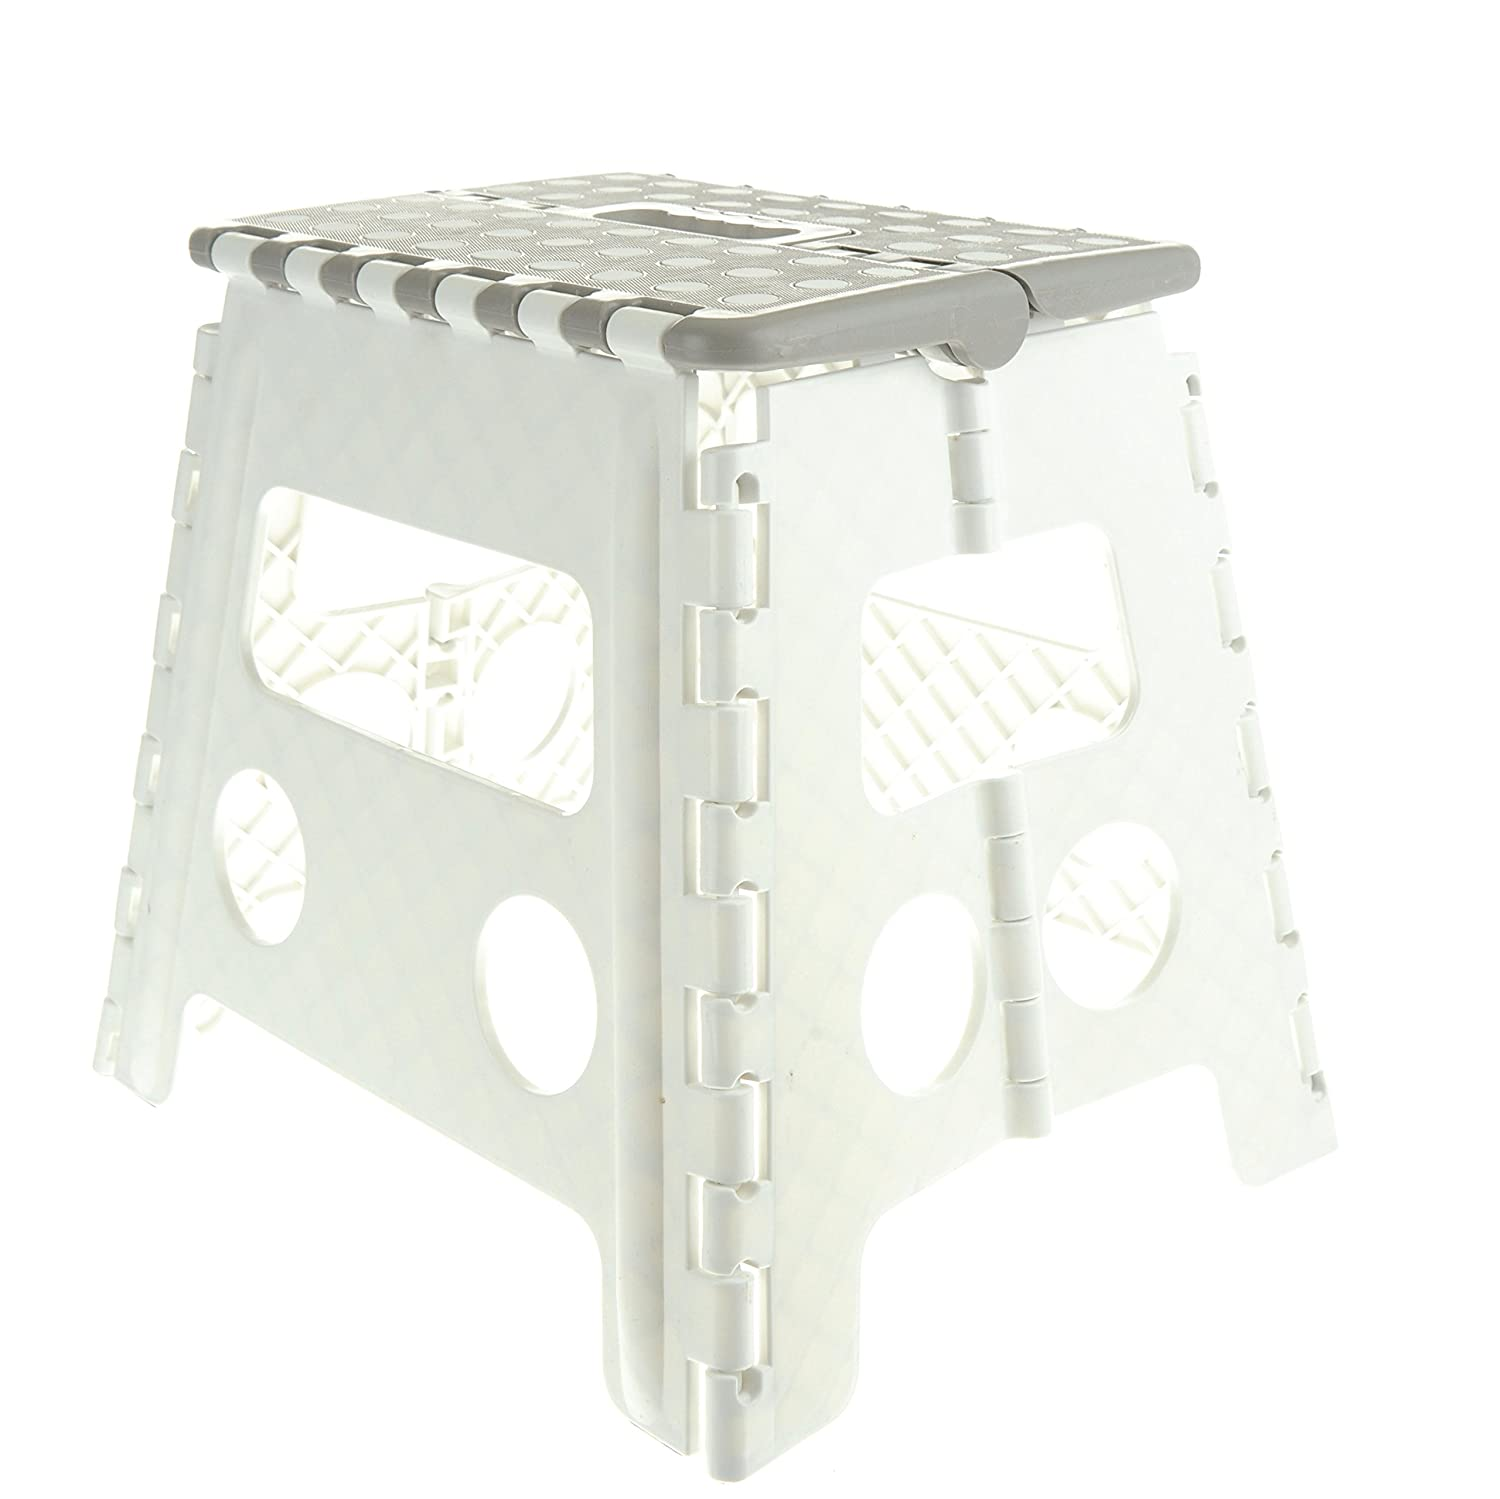 Unity 13 Non Slip Foldable Step Stool with Carrying Handle Supports Up to 300LBS Easy Open Perfect for Kitchen Bathroom Bedroom More White Grey White Dots